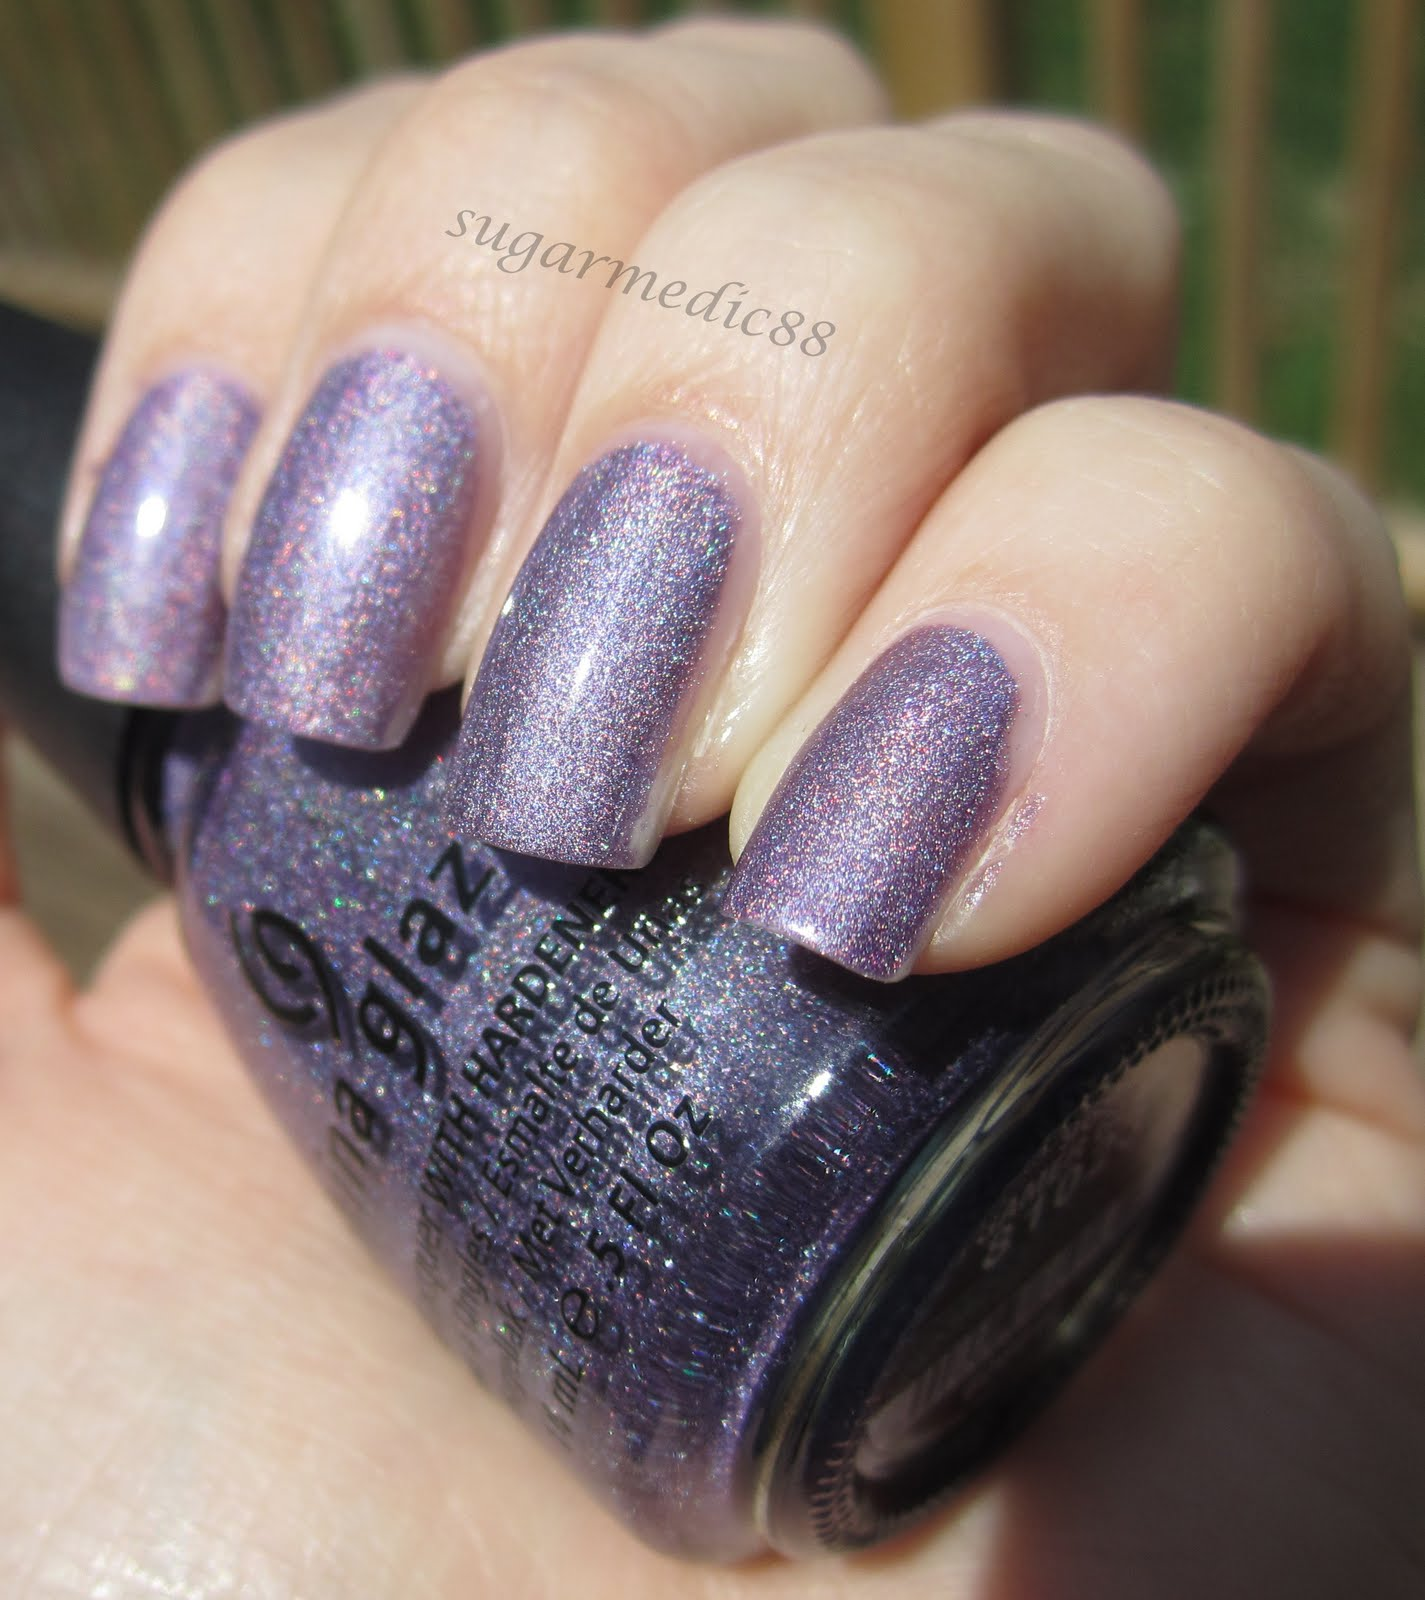 The Polished Medic: China Glaze Gamer Glam and stupid USPS